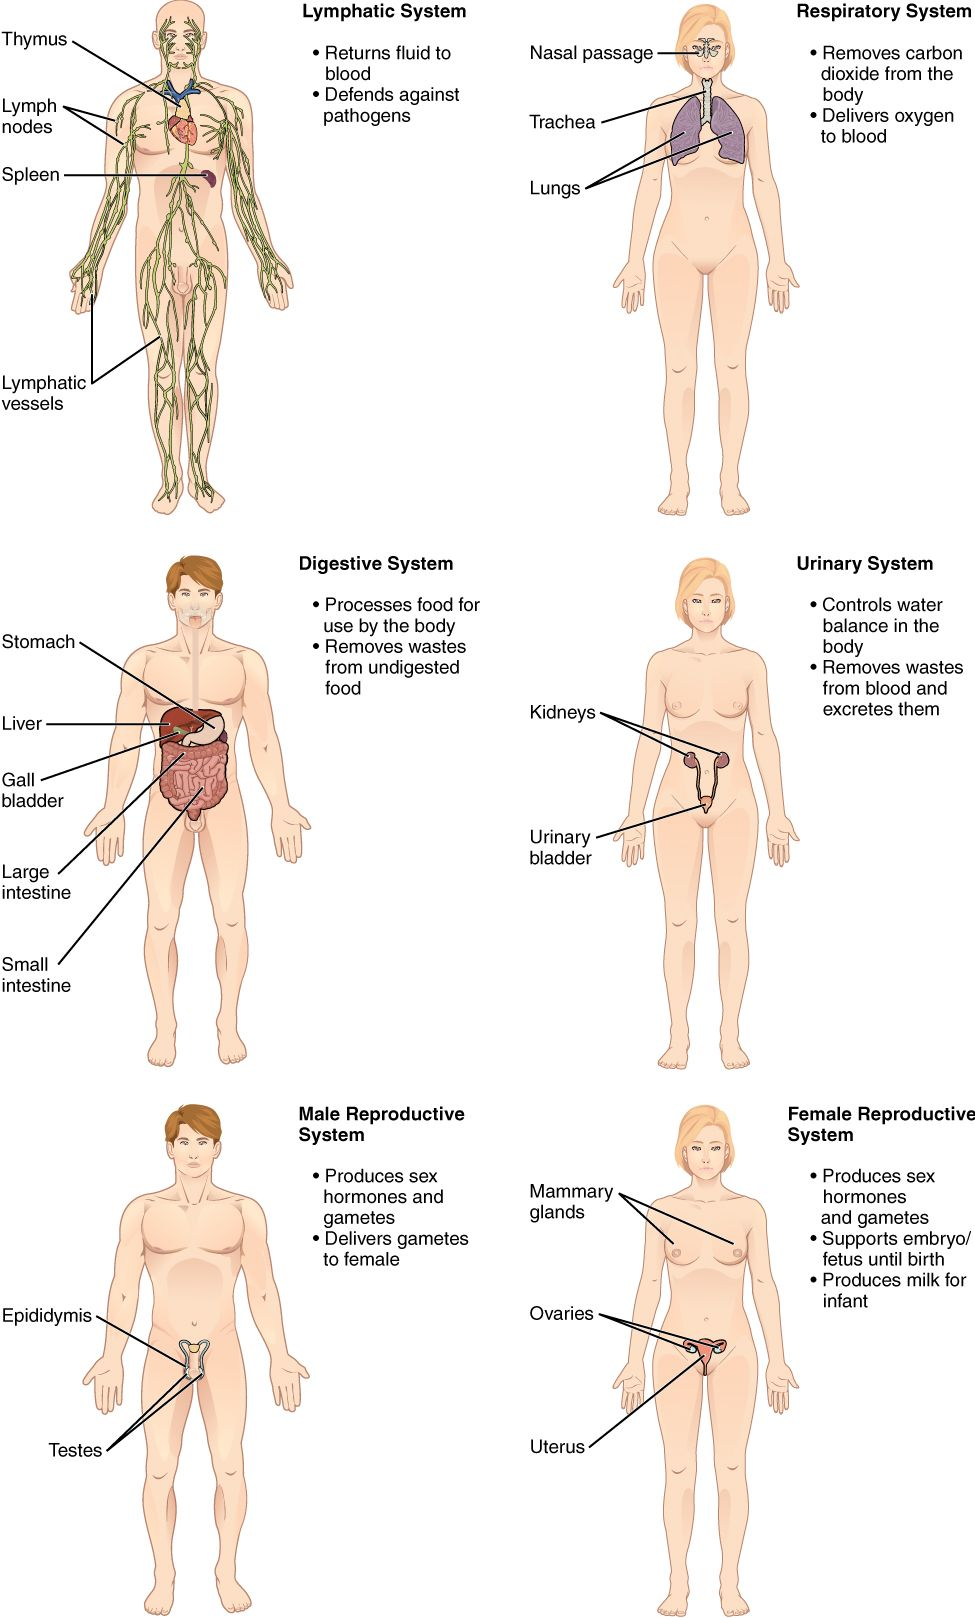 organ systems of the human body ii | anatomy | pinterest | human, Muscles